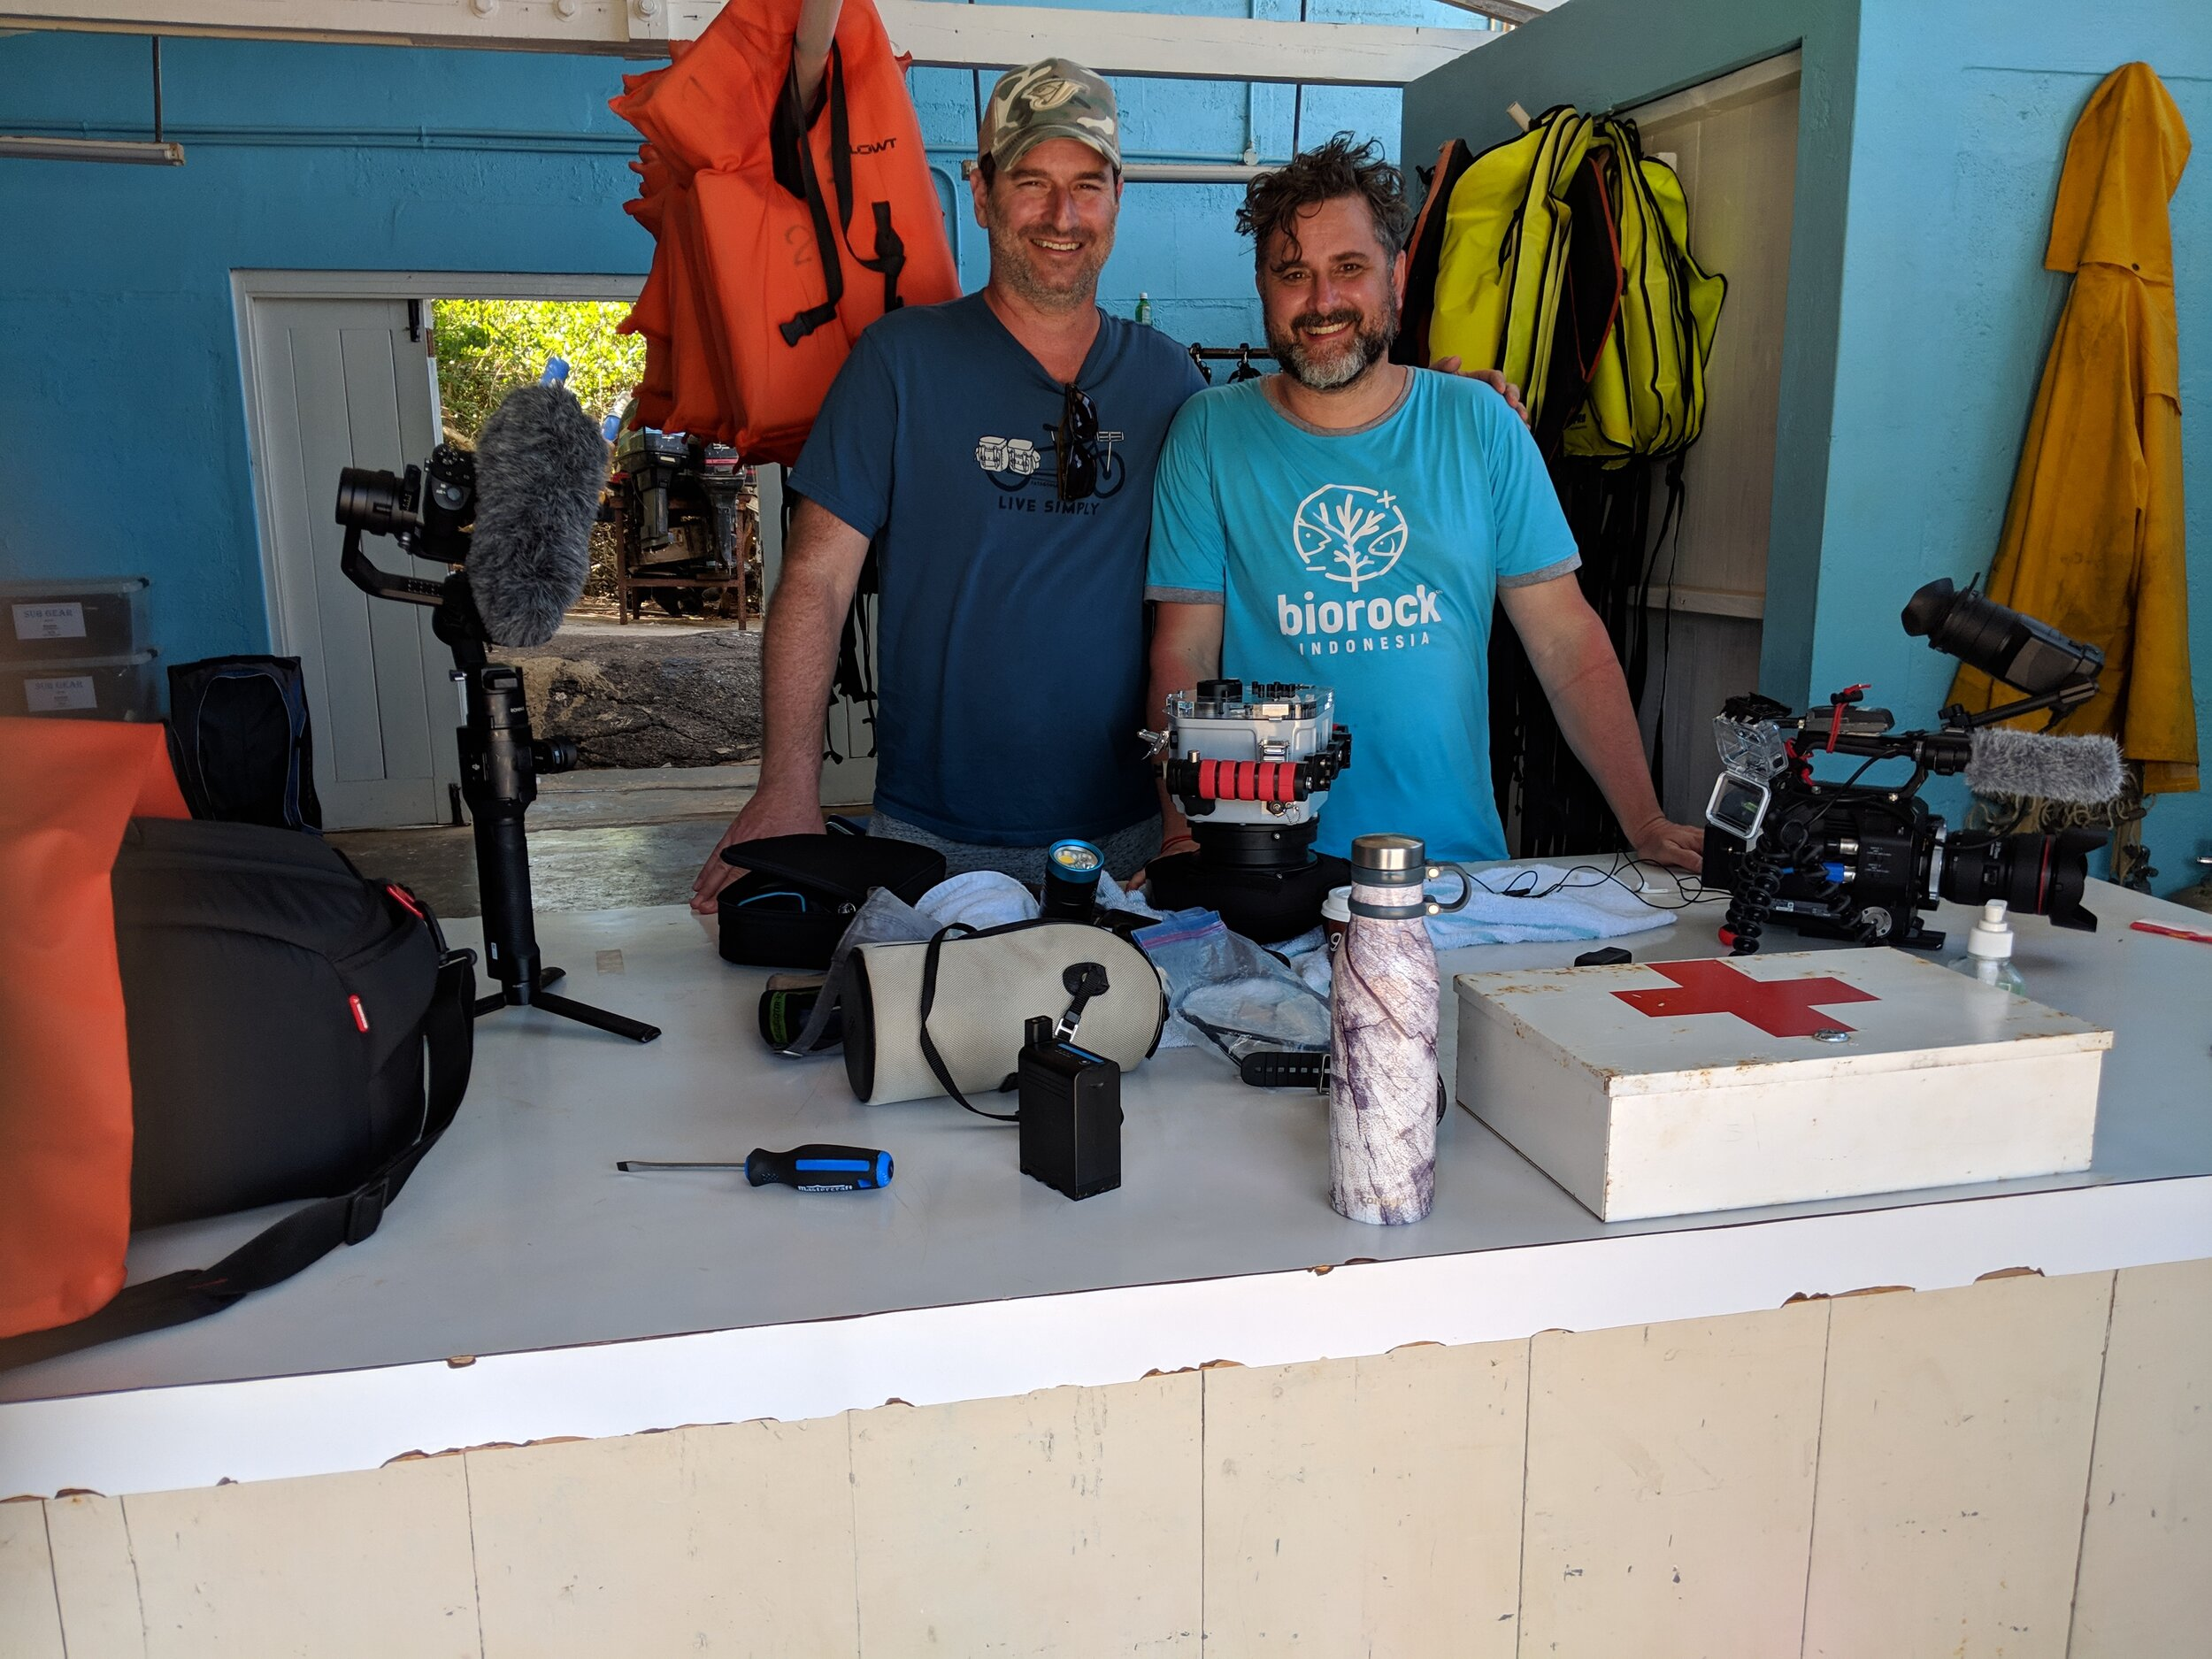 Iain Robinson poses with director Andrew Nisker in Discovery Bay, Jamacia